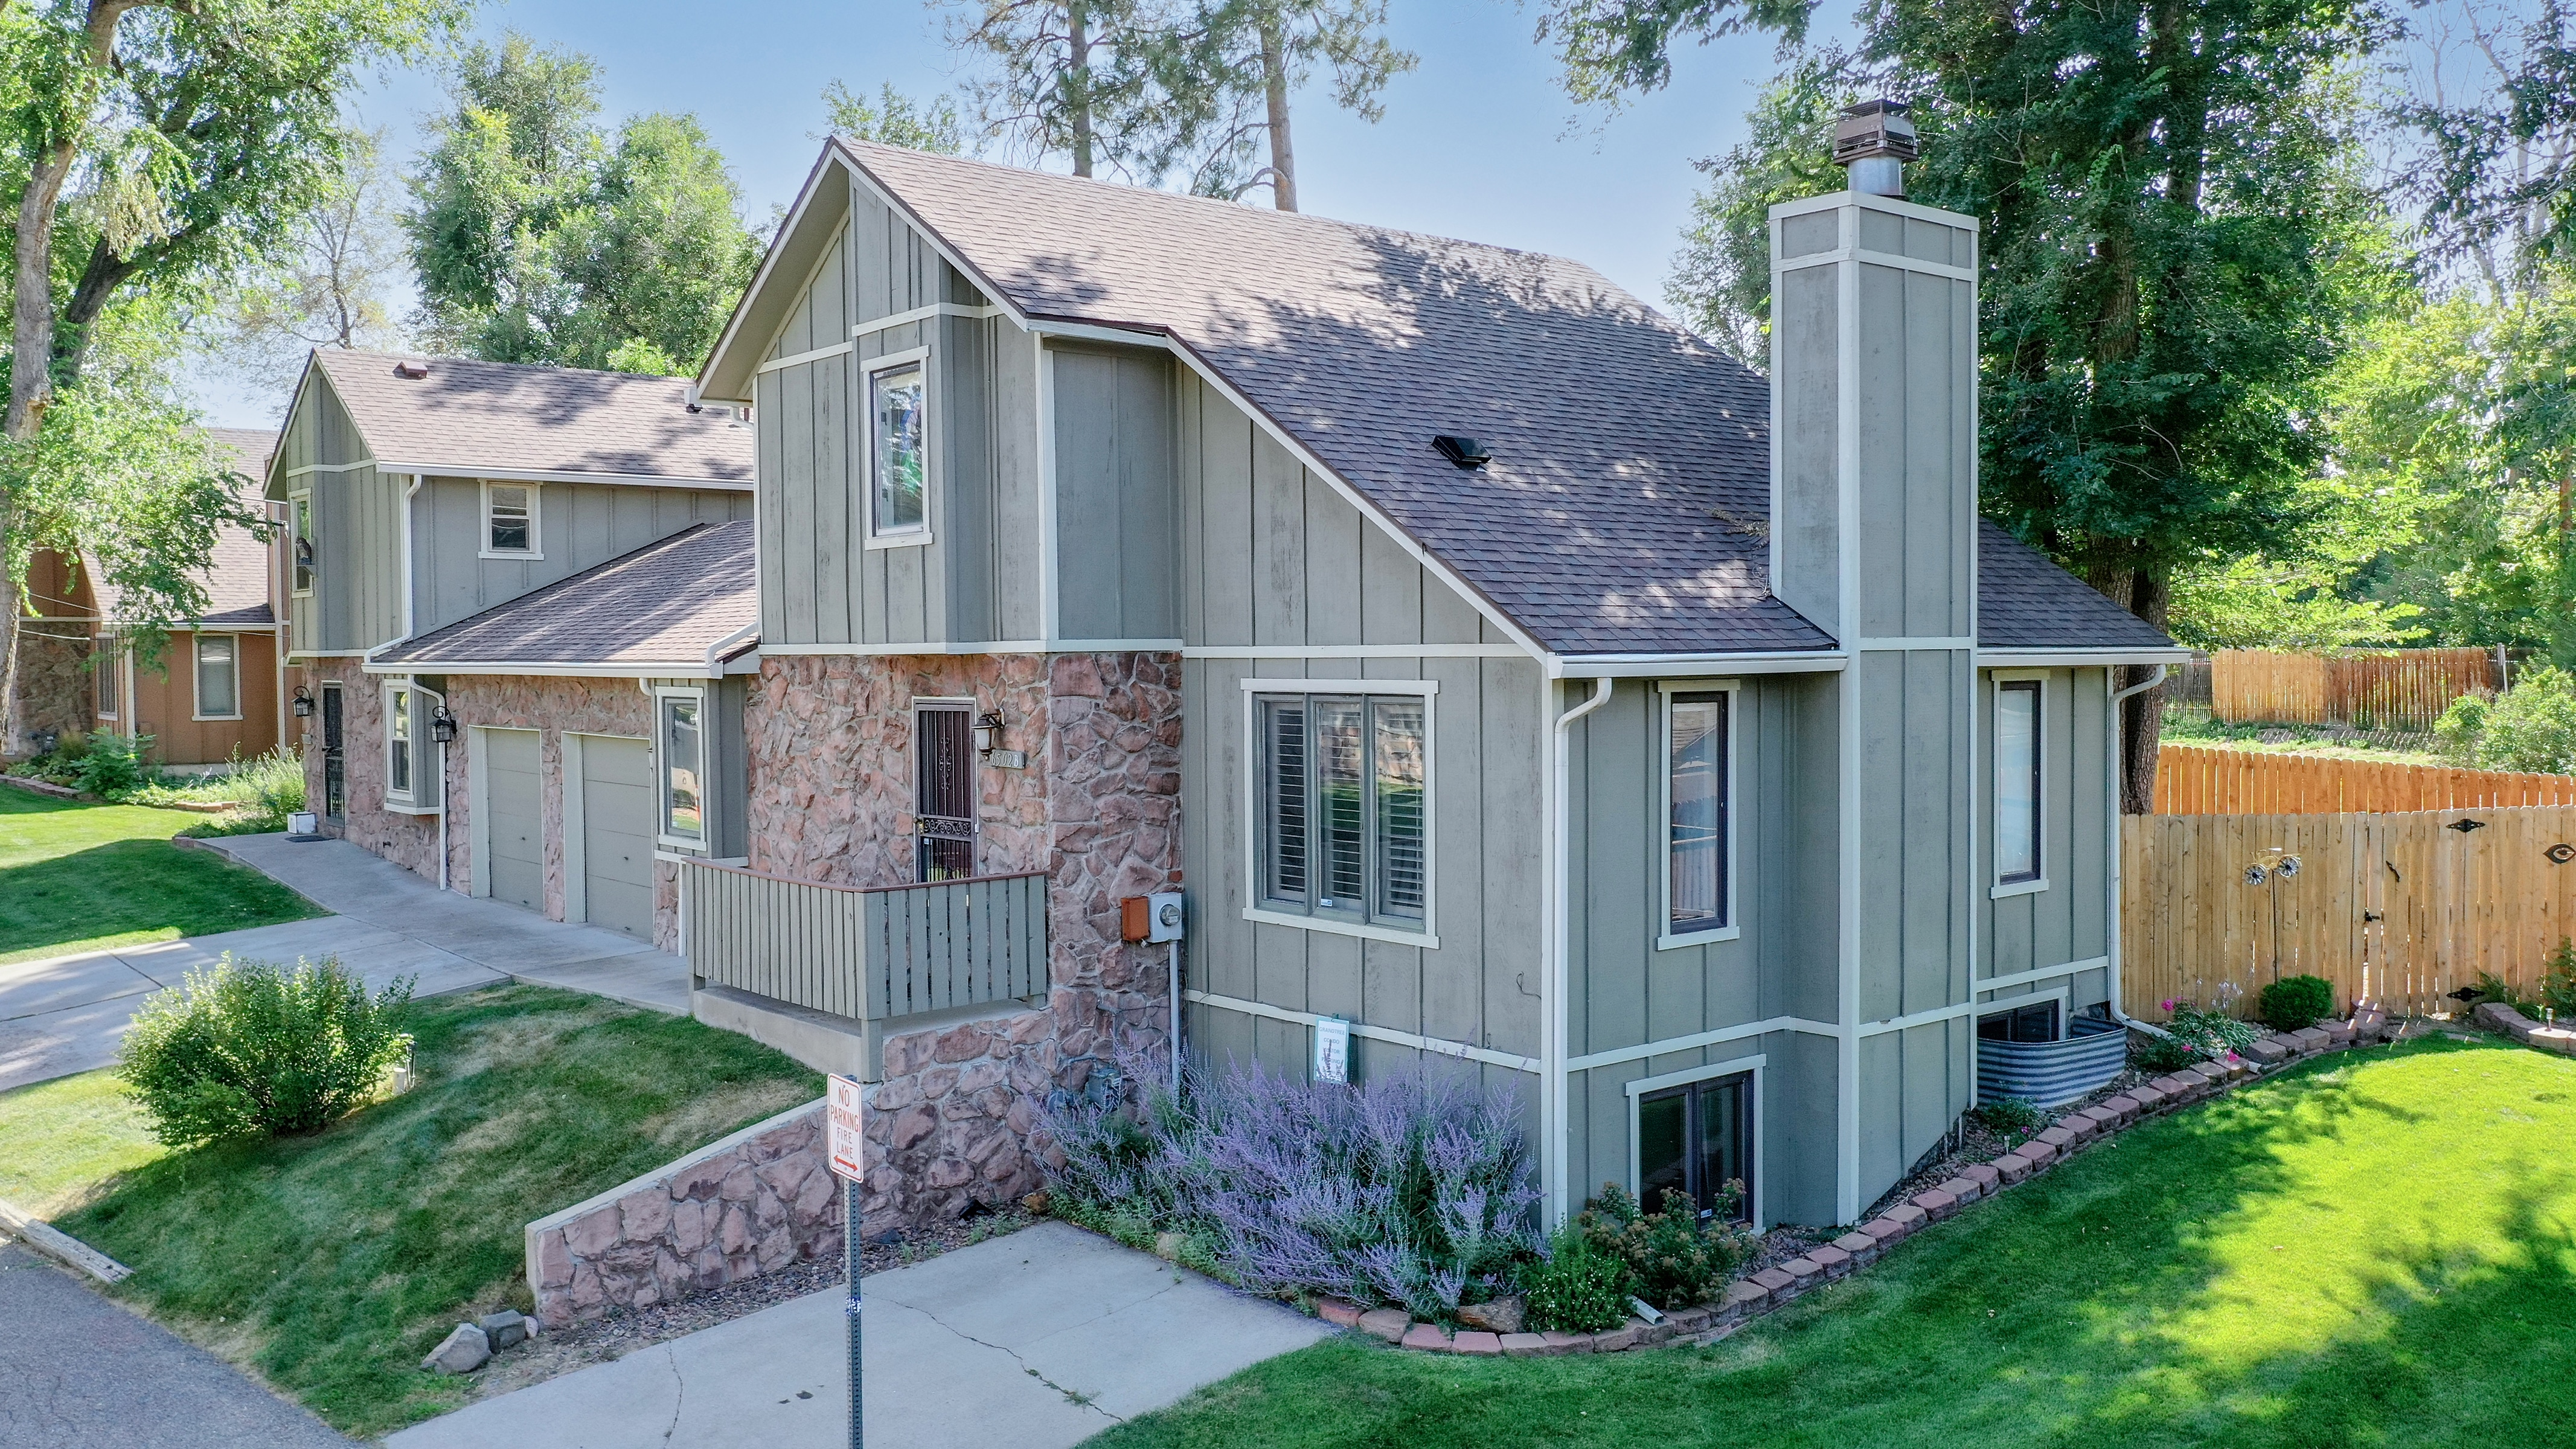 Home for Sale in Arvada, Colorado close to Olde Town Arvada